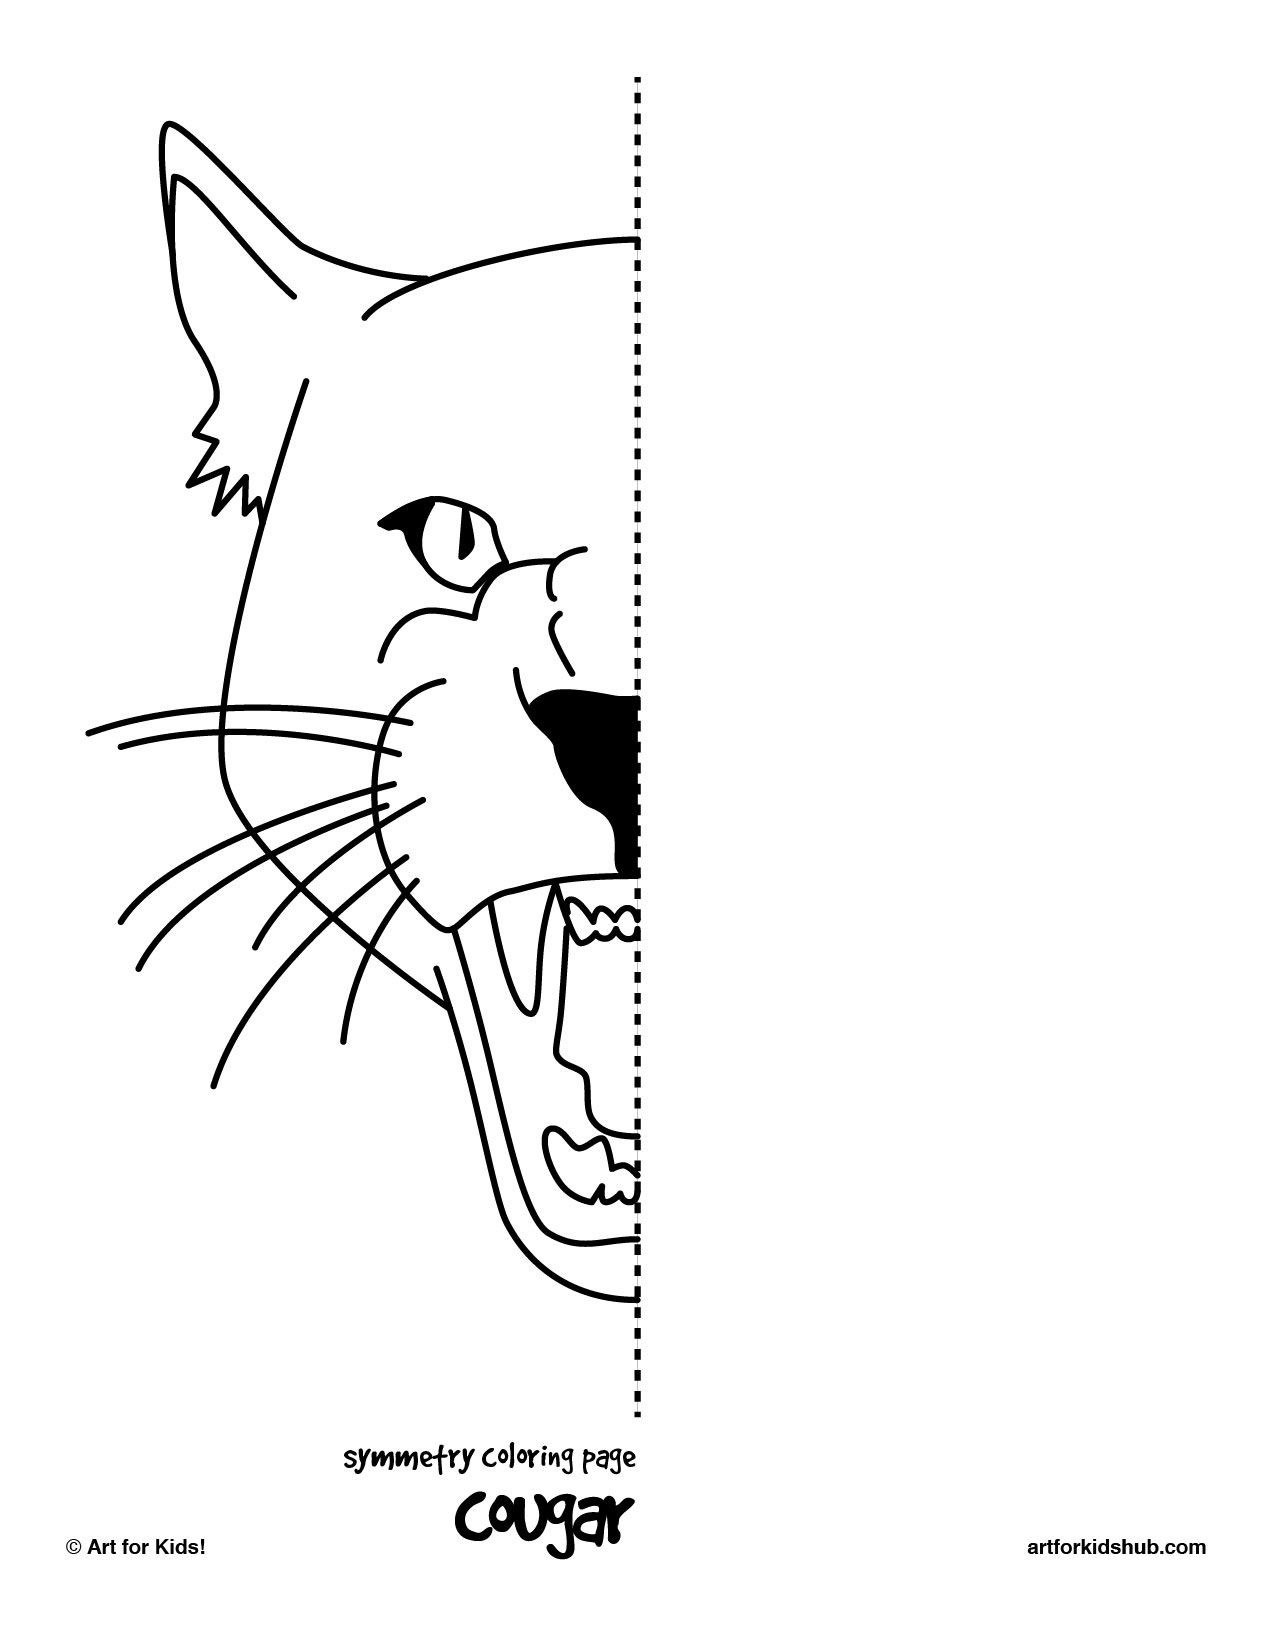 I Made 6 Free Coloring Pages To Illustrate Symmetry Cat